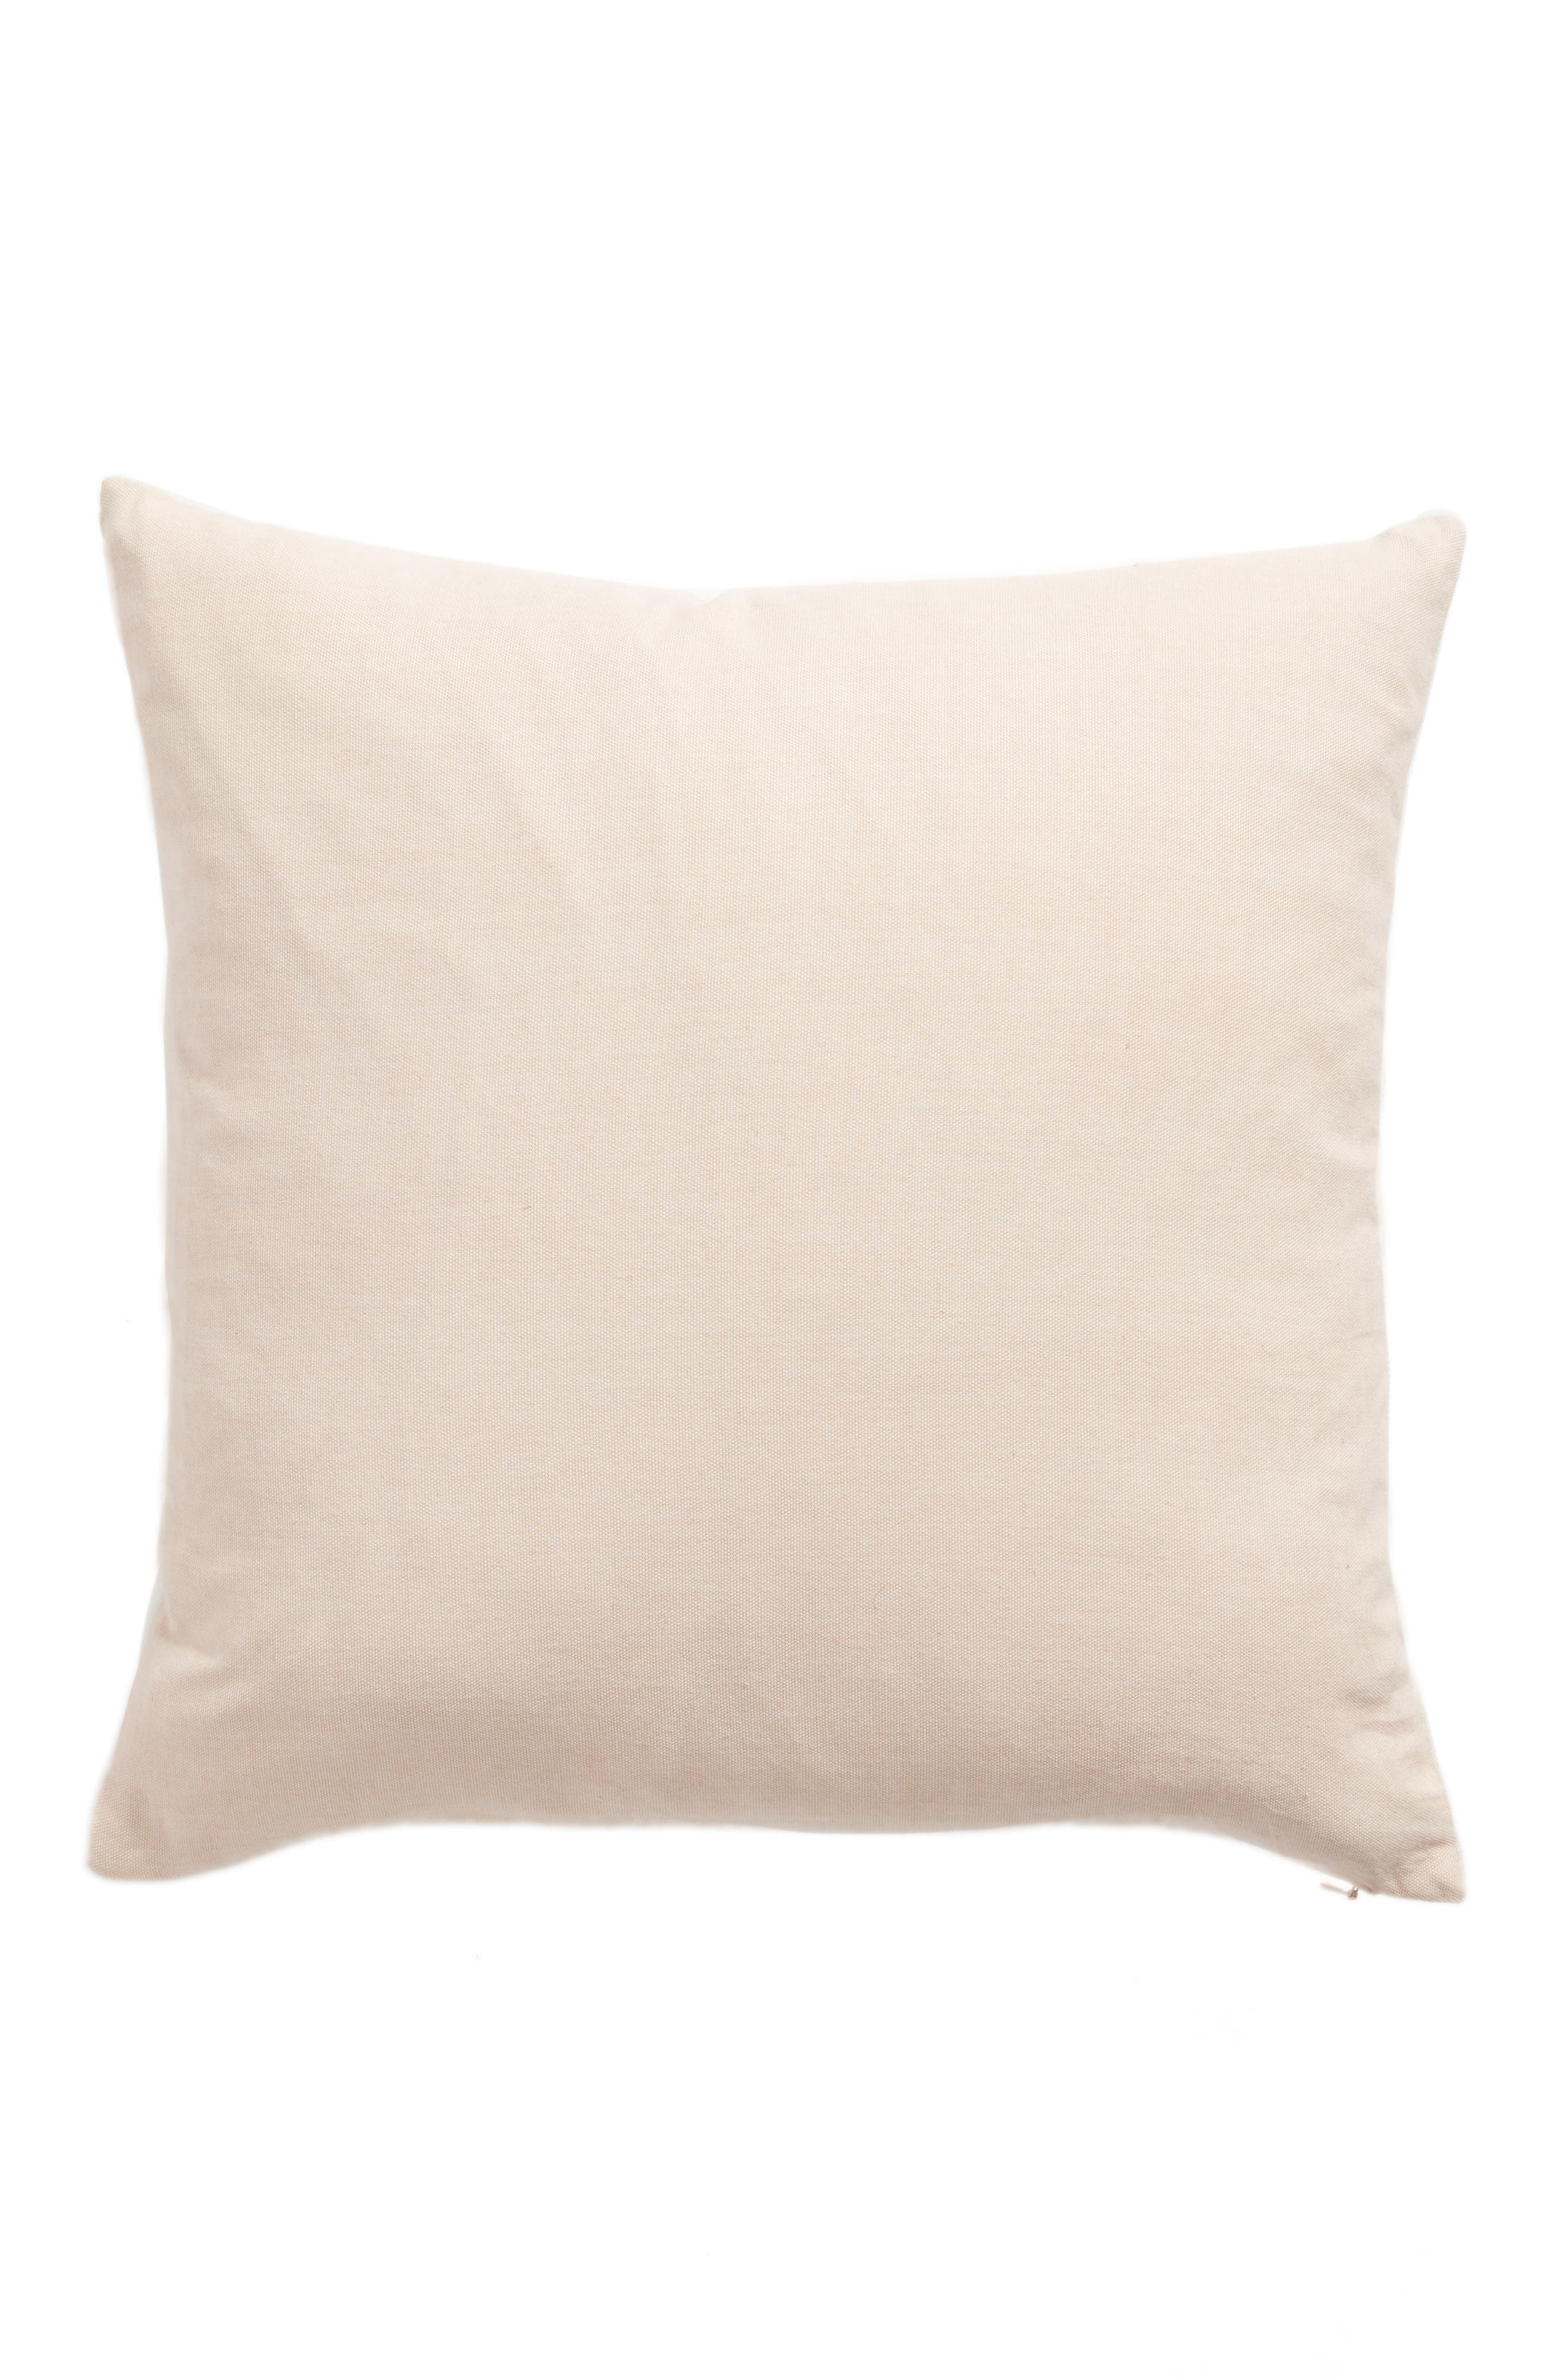 Lots of Love Accent Pillow,                             Alternate thumbnail 2, color,                             900